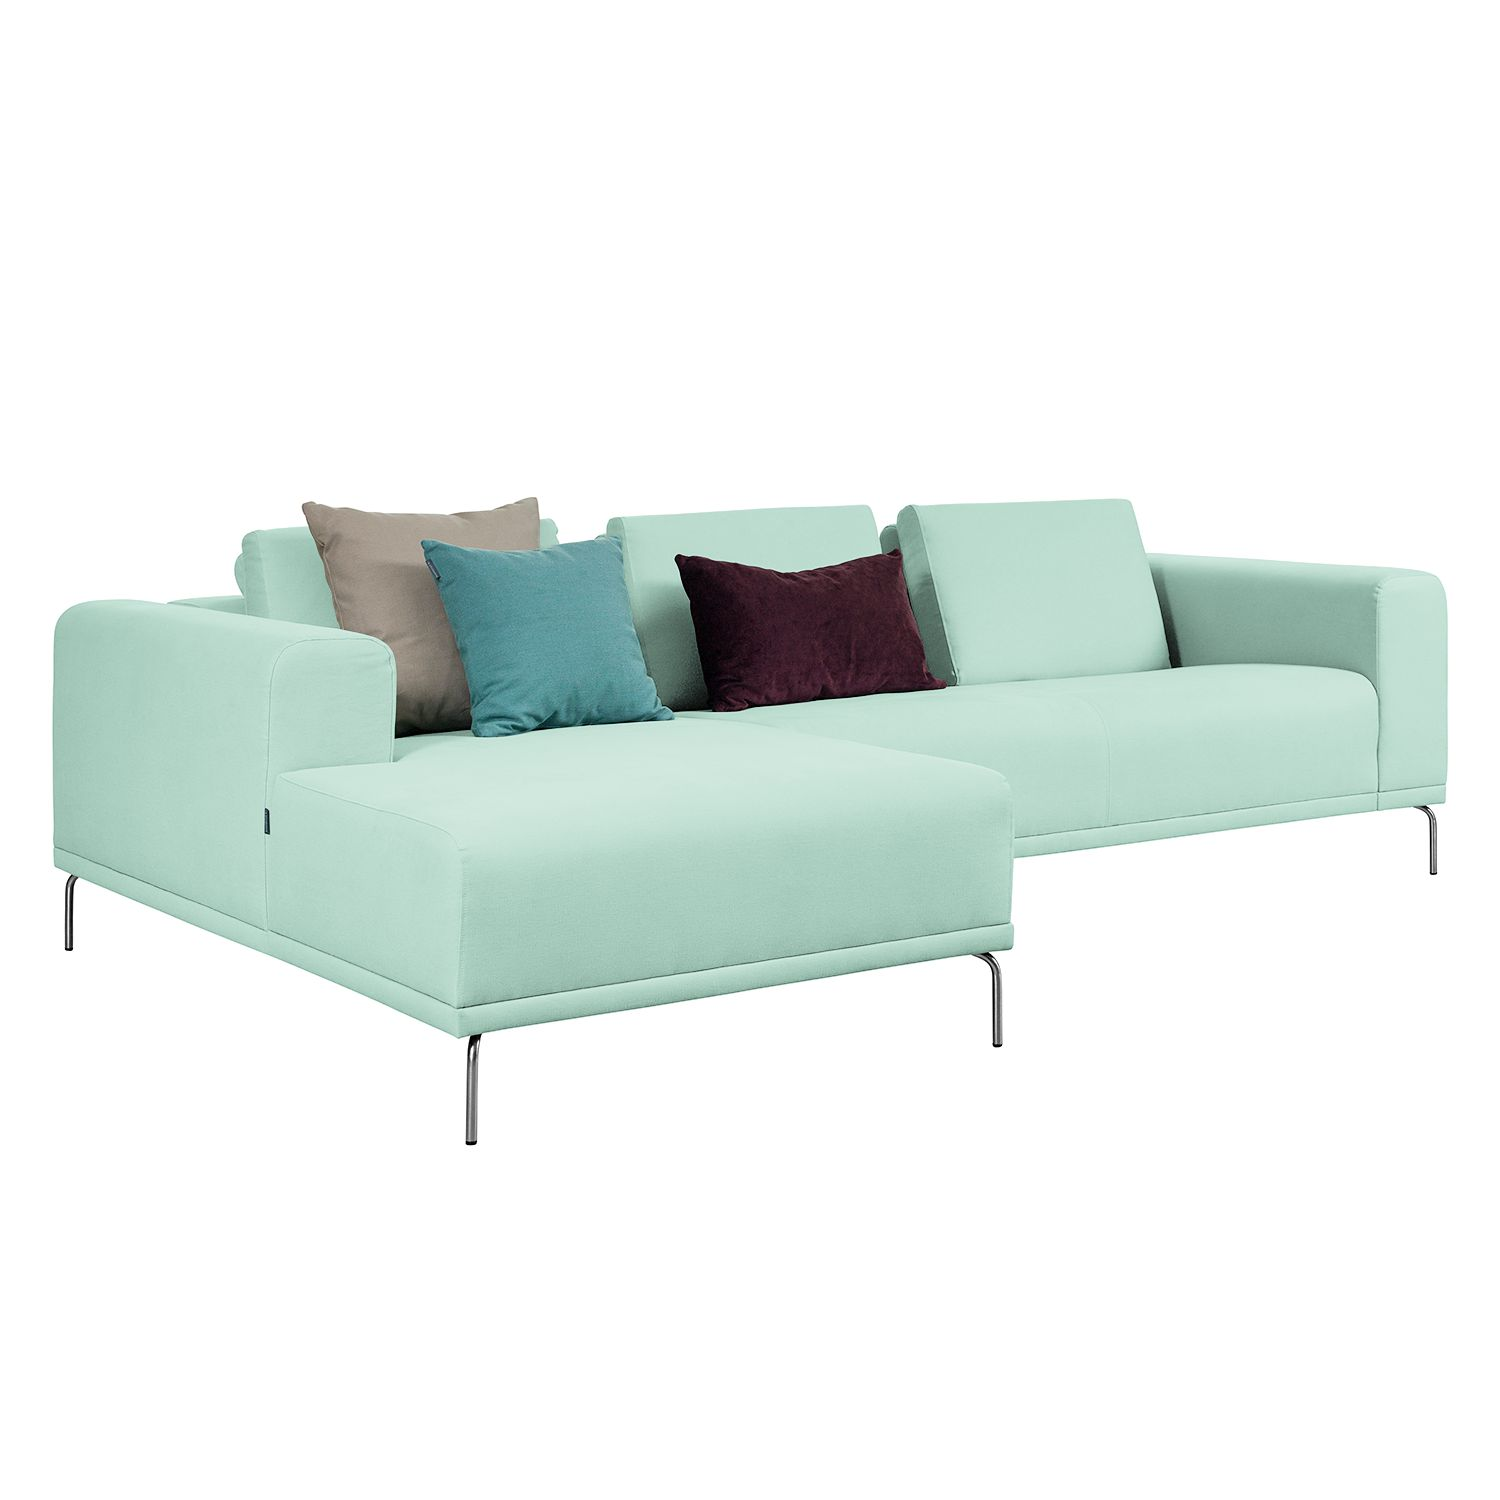 Interliving Ecksofa Ecksofa Hellblau Gallery Of Ecksofa Blau With Ecksofa